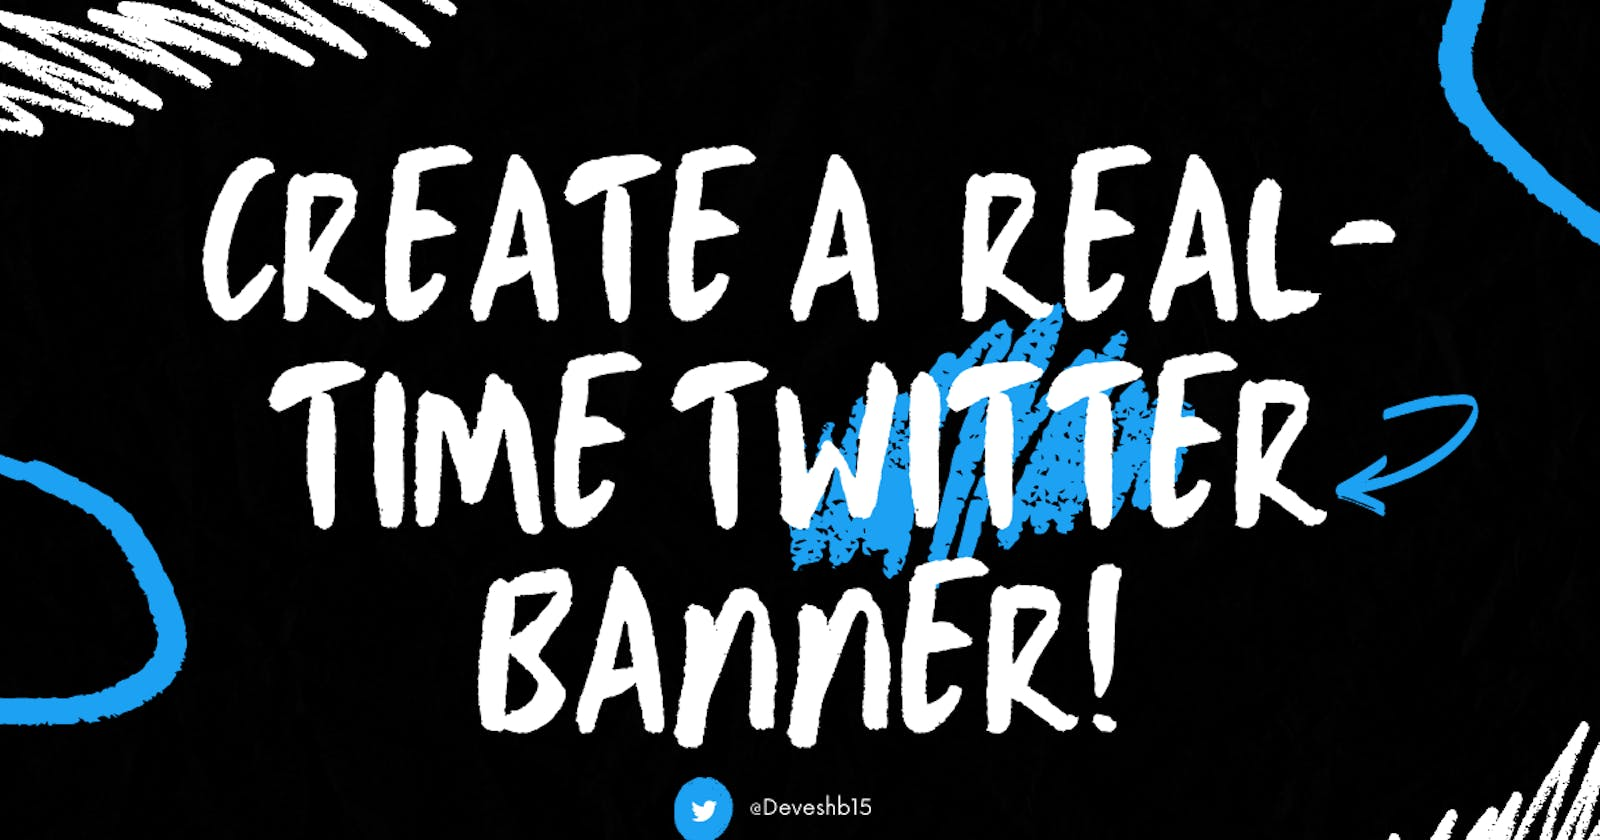 Create a real-time Twitter banner!